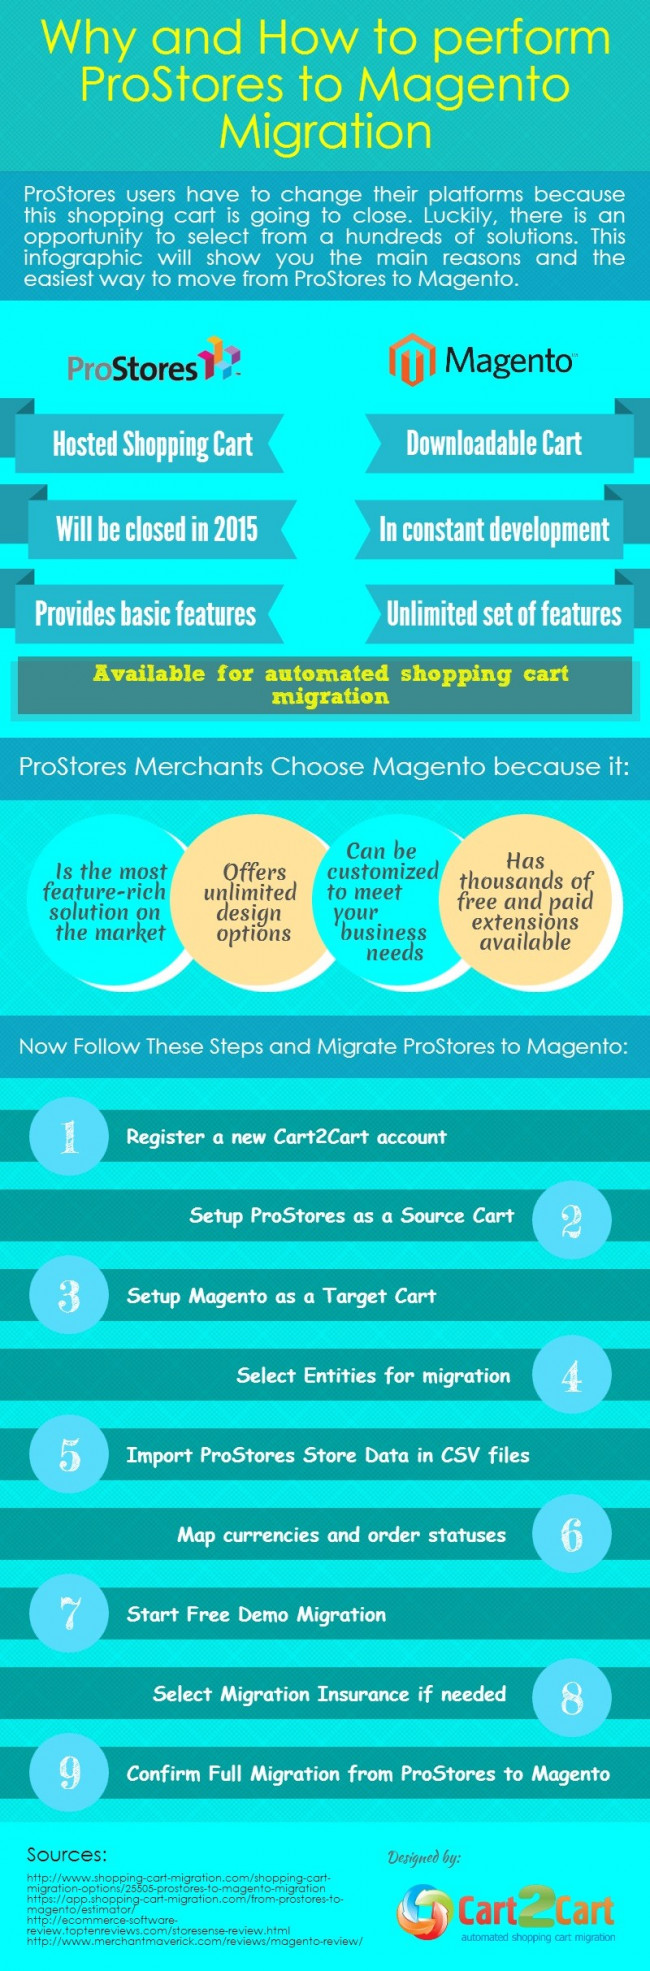 Why and How to Perform ProStores to Magento Migration